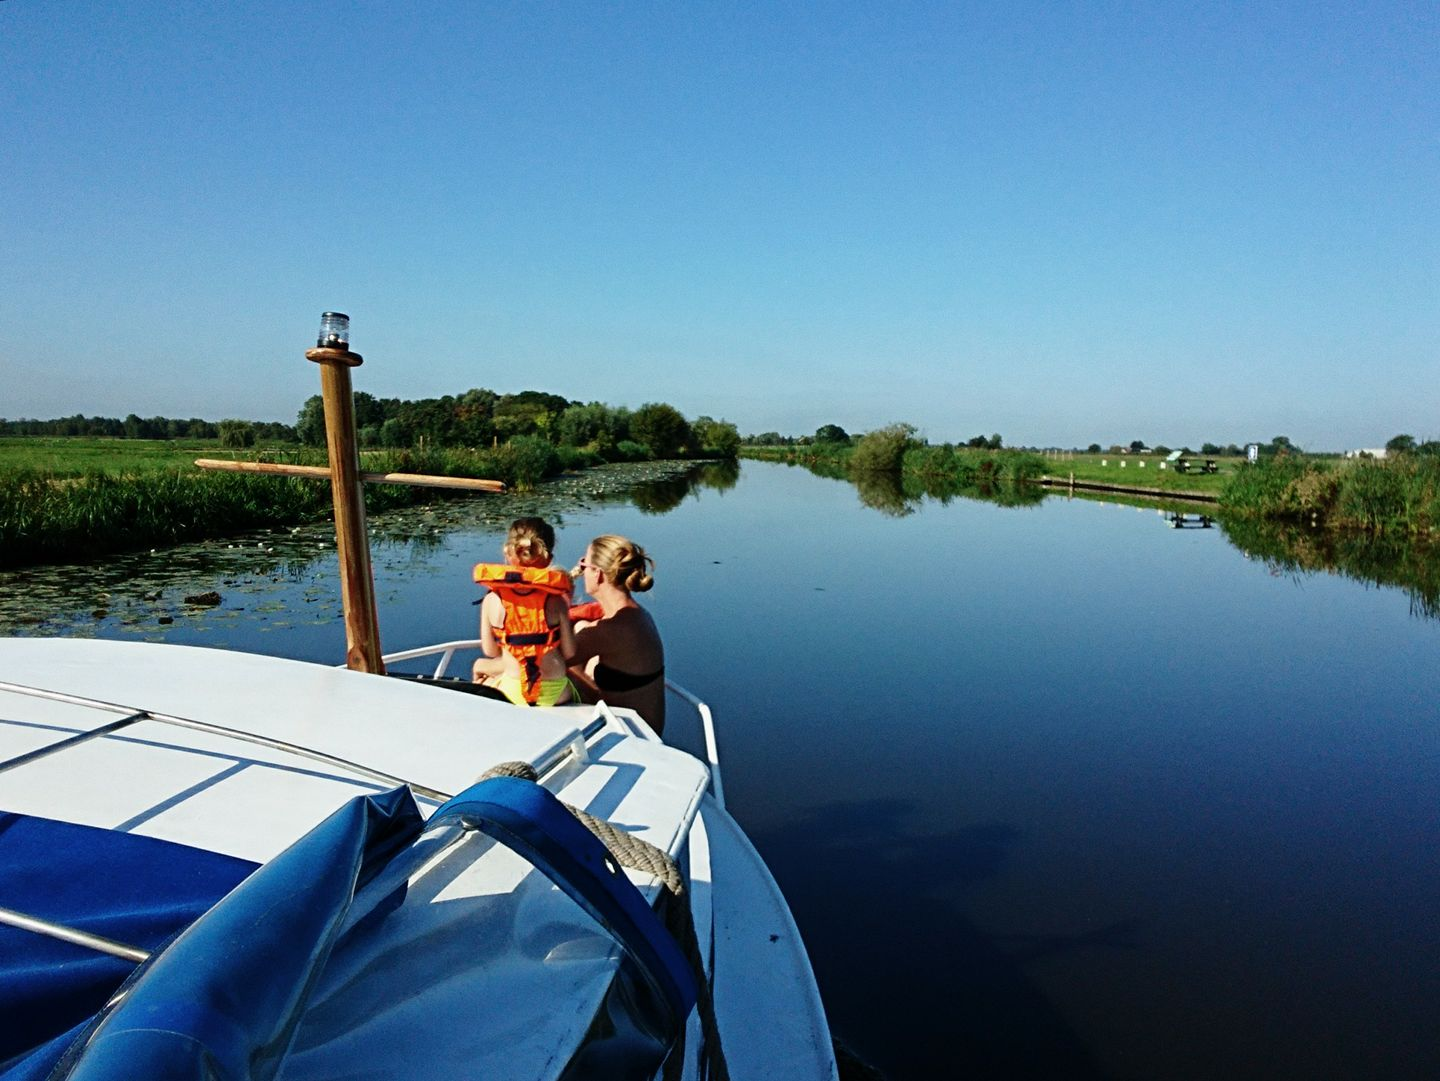 Enjoy the peace and quiet of the Dutch polder landscape